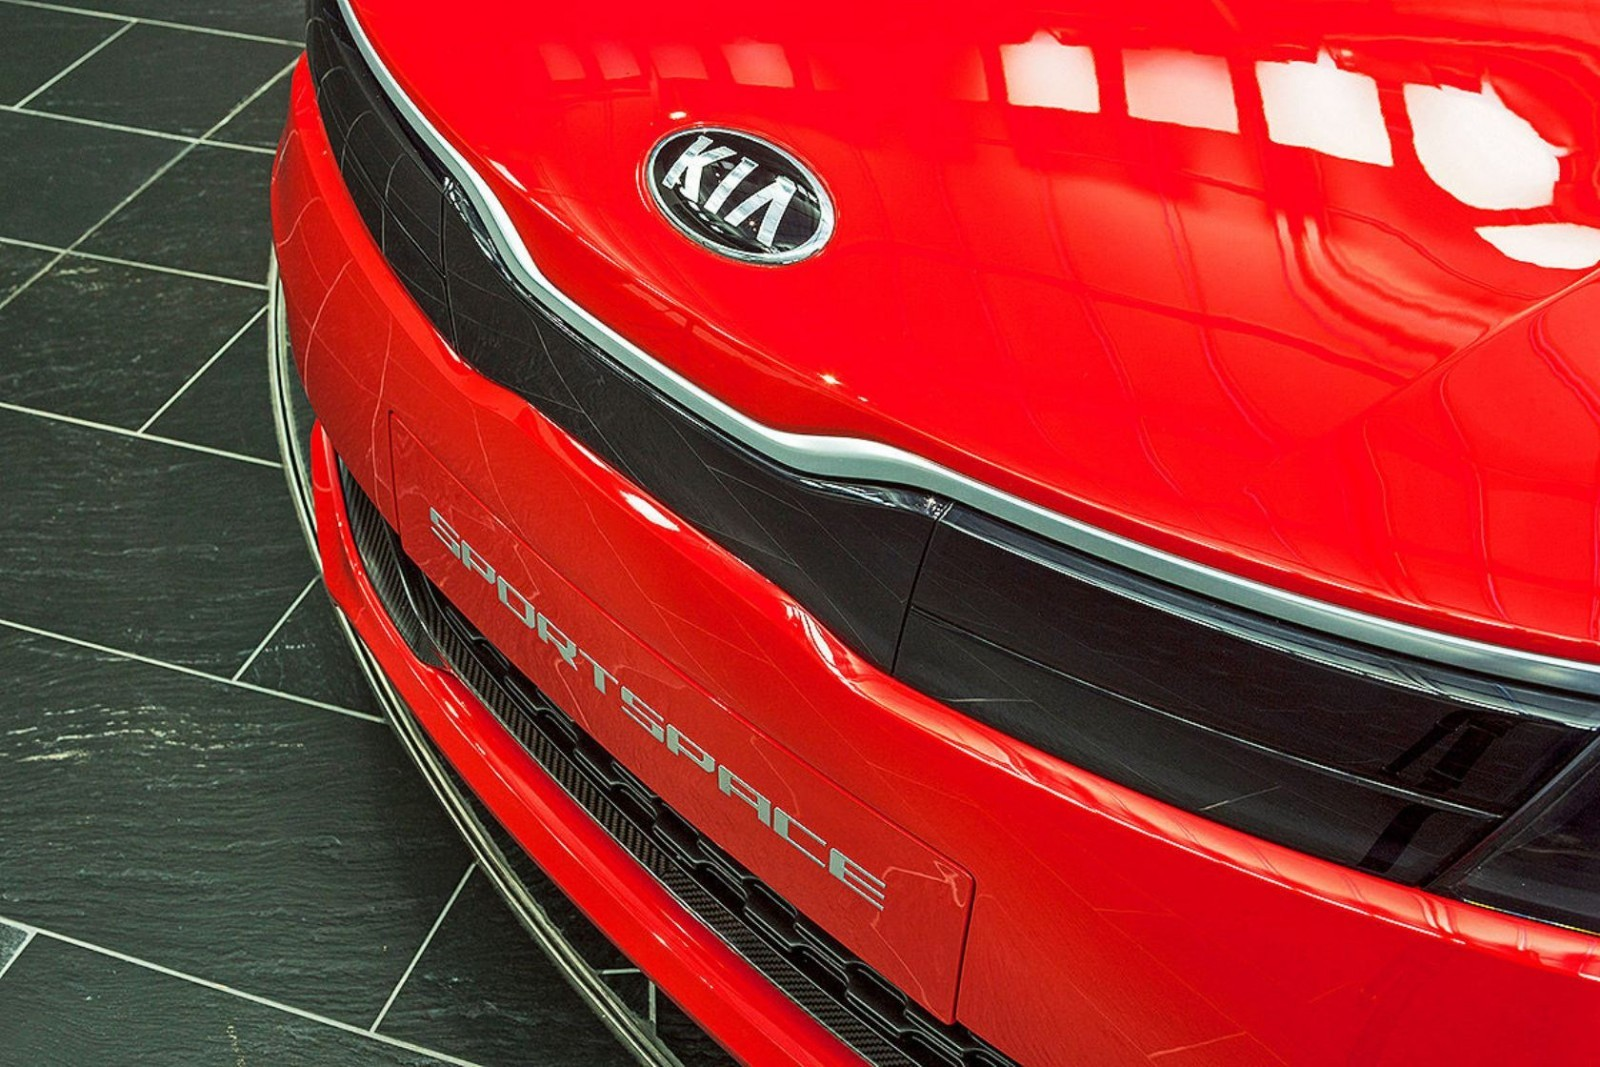 2015 Kia SPORTSPACE Concept - Latest Photos 19